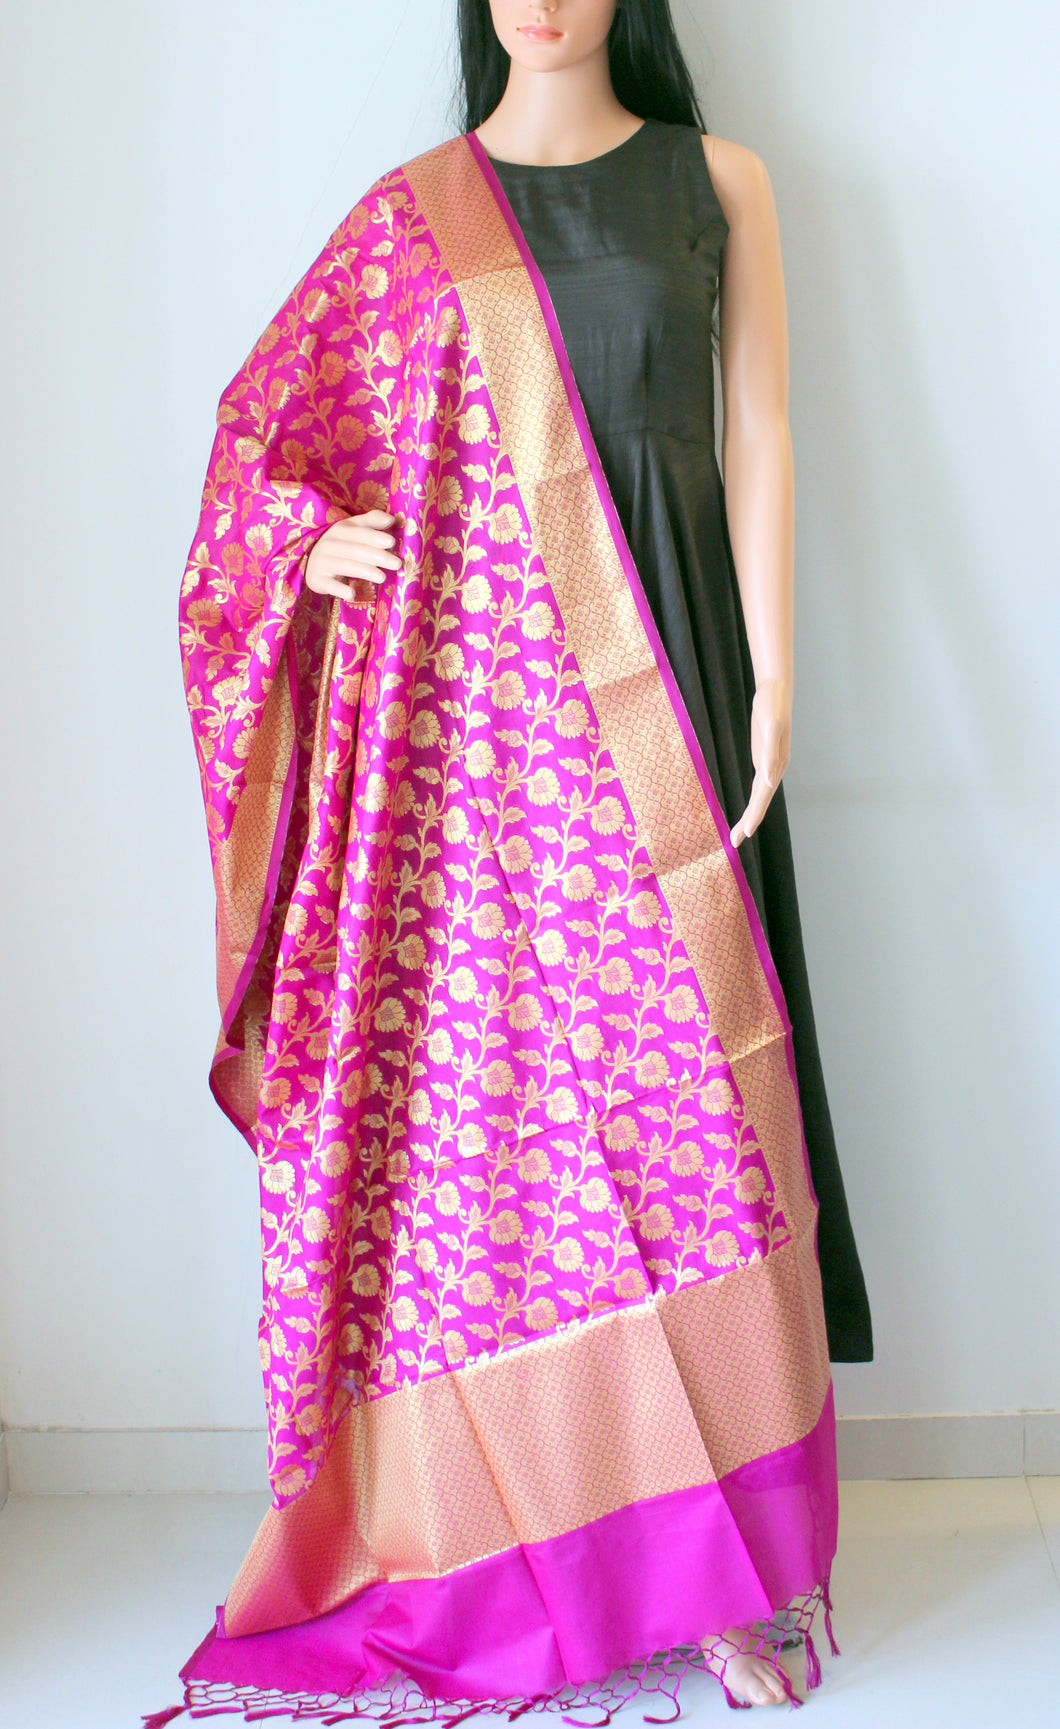 Rani Colour Banarasi Cutwork Brocade Handwoven Silk Dupatta